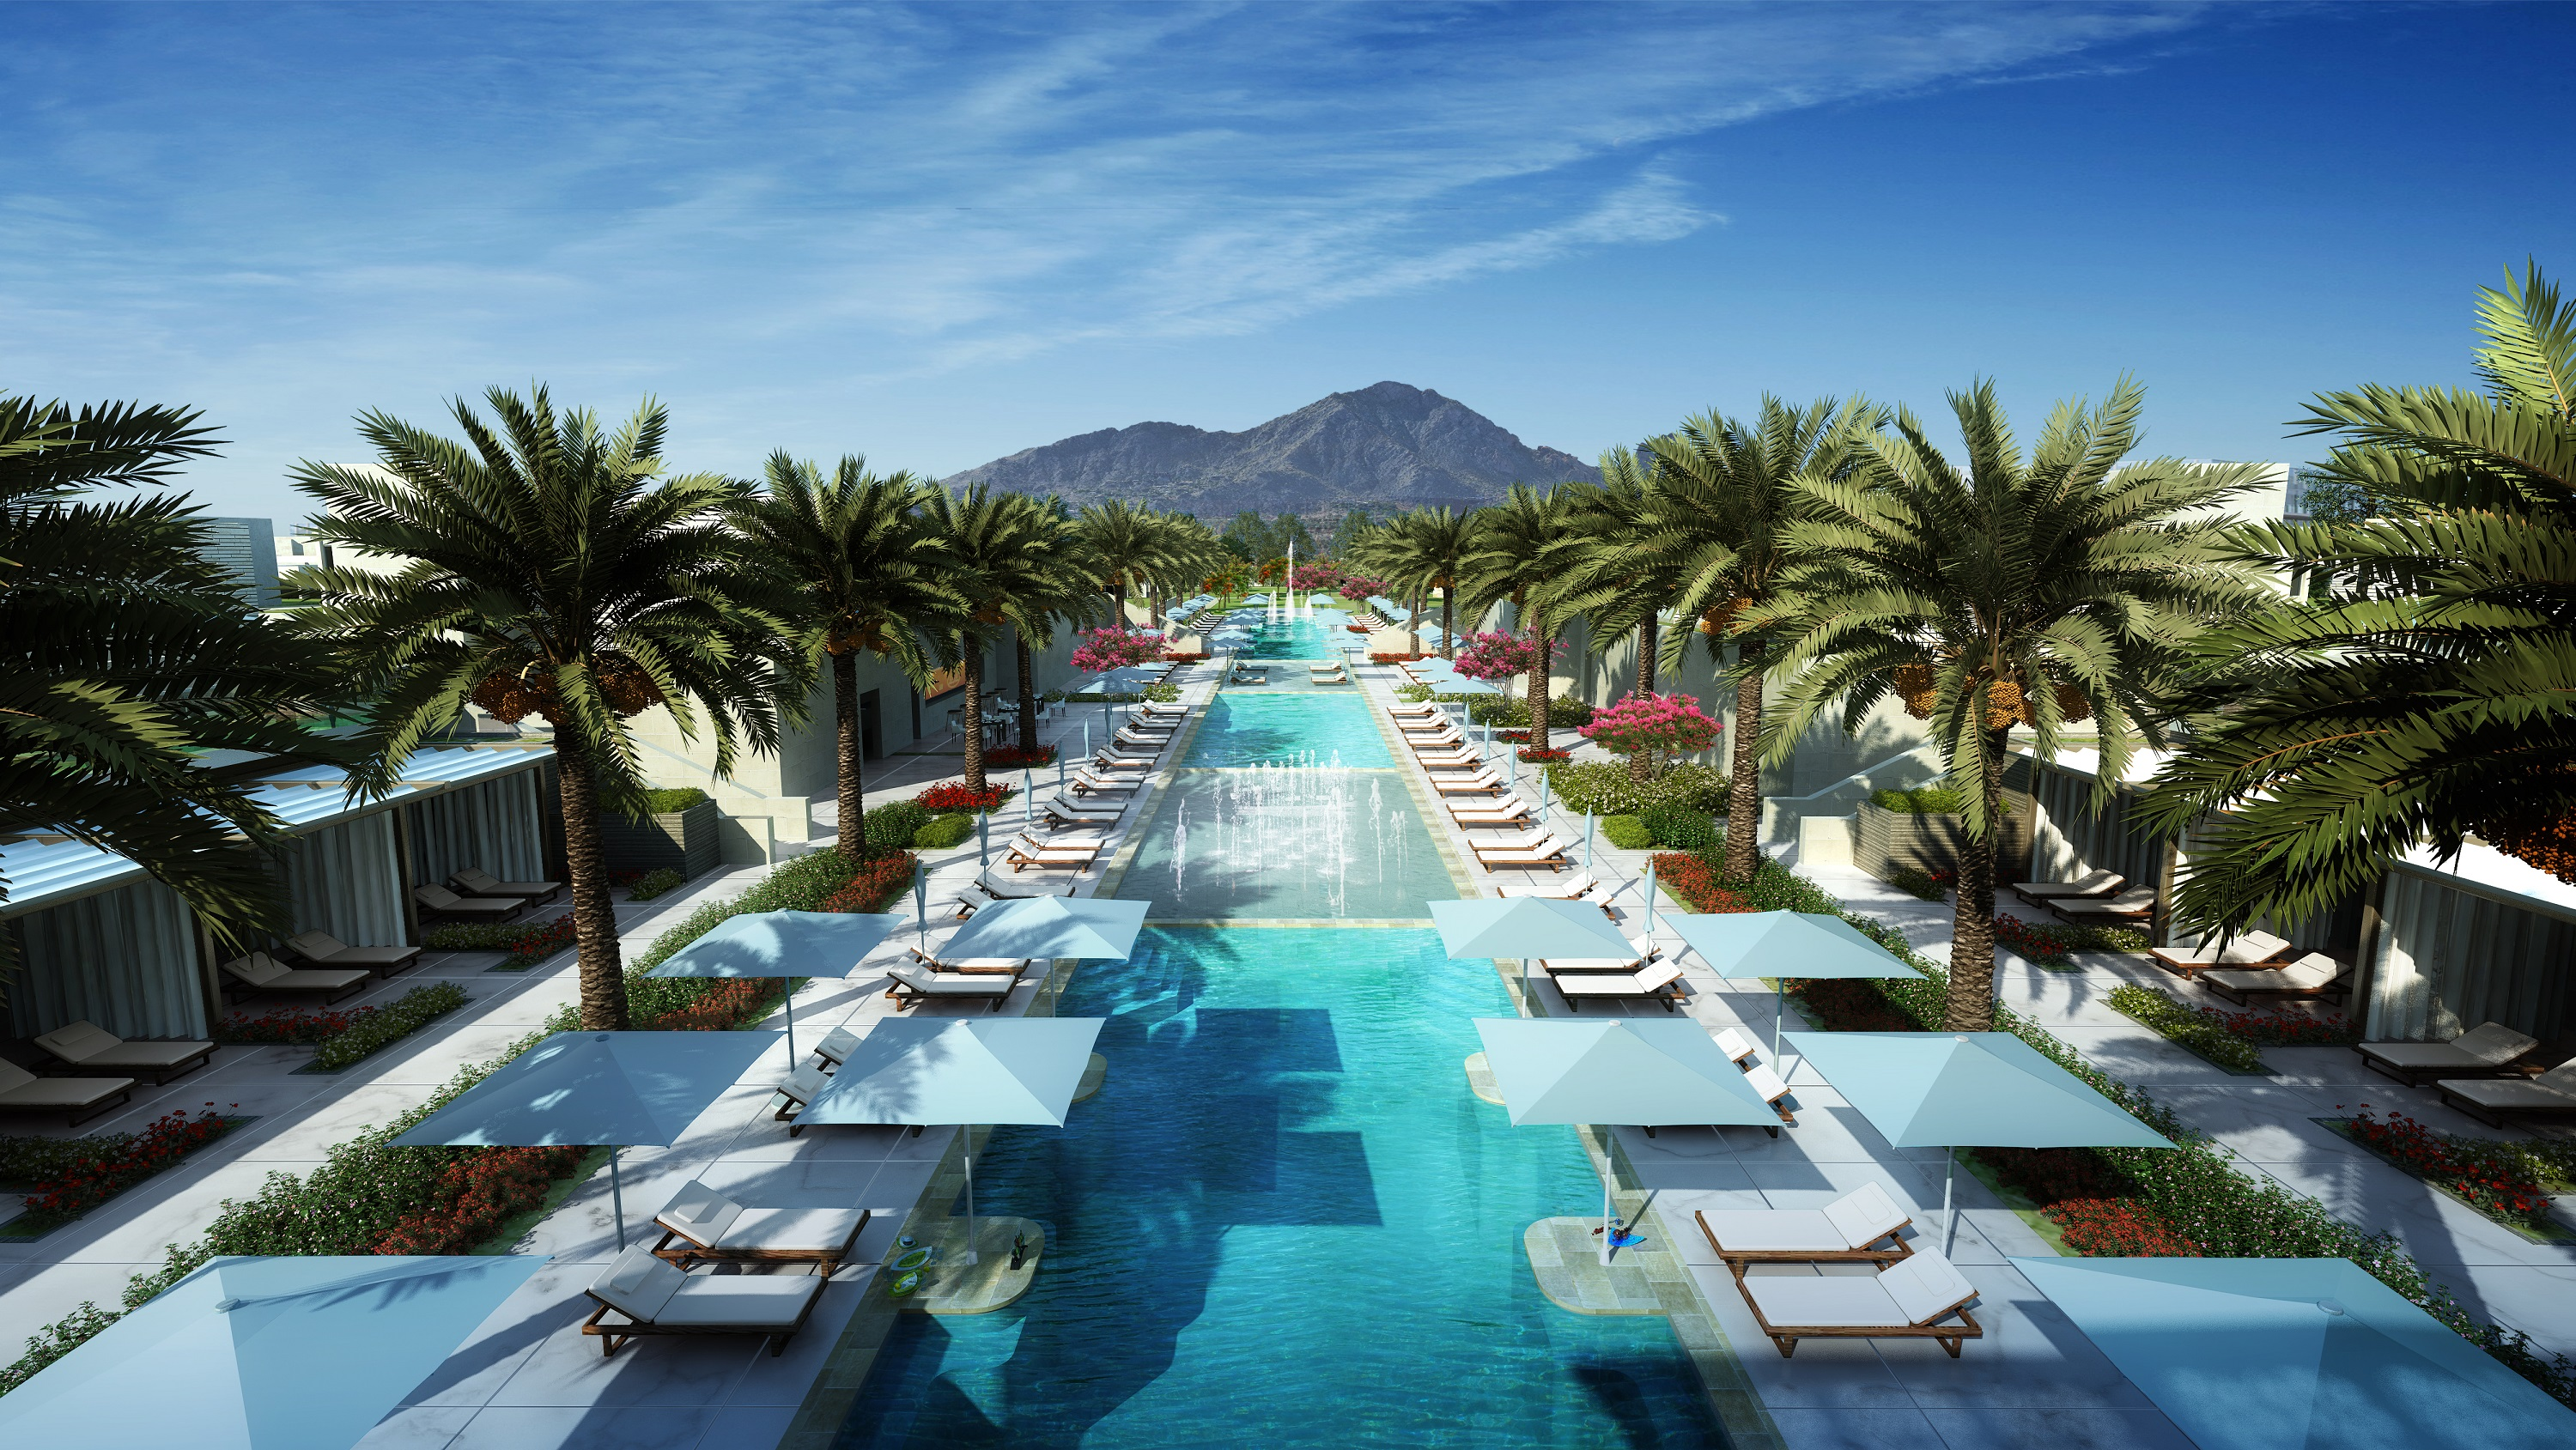 50 New Hotel Openings For 2018 | North America | Ritz-Carlton - Paradise Valley, Scottsdale, Arizona, USA